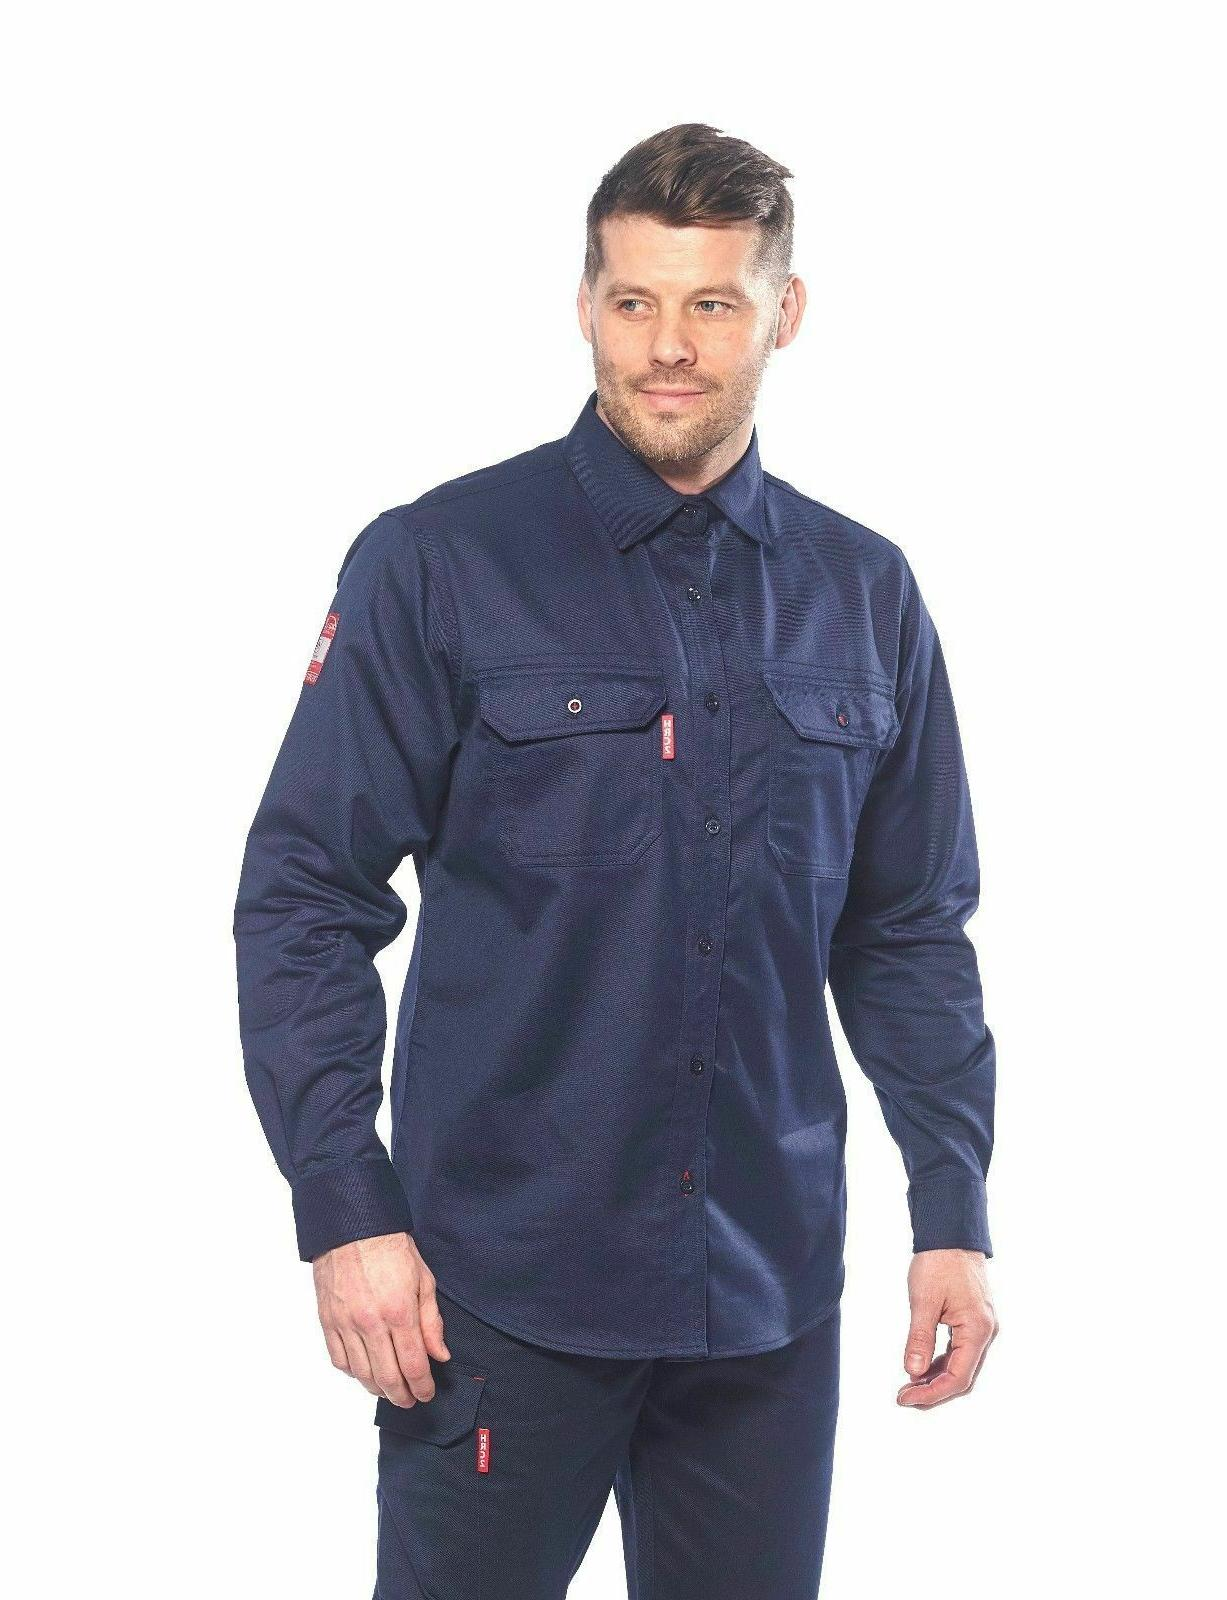 fire resistant shirt fr 89 the bizflame